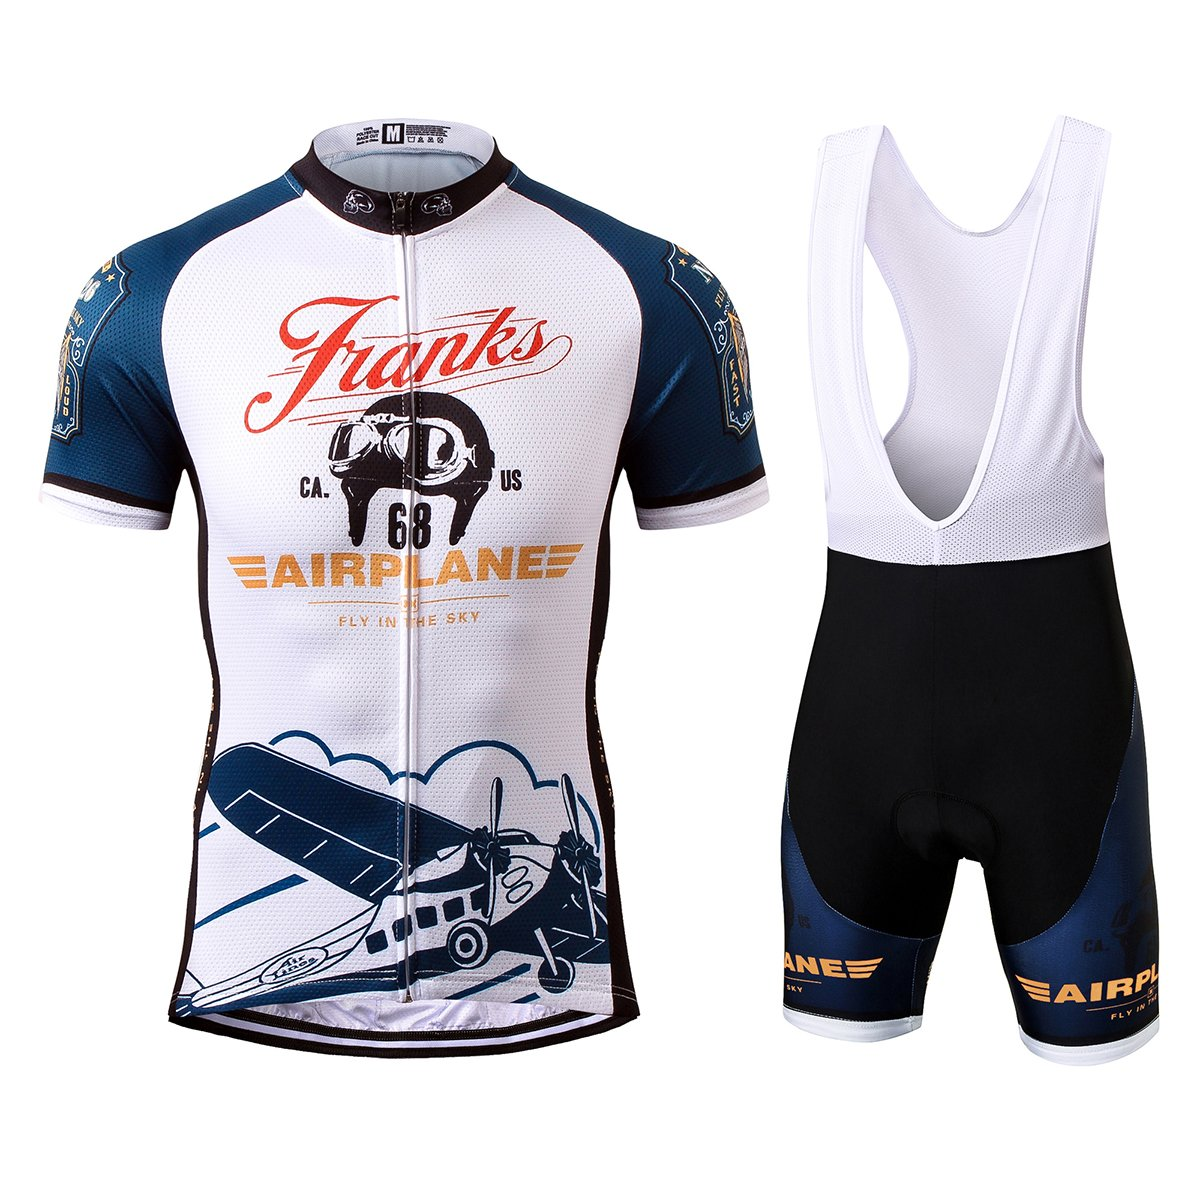 TRS0041 LAOYOU Men's Cycling Jersey Mountain Bike Sports Short Sleeve Jersey Bicycle Cycle Shirt Wear Comfortable Breathable Shirts Tops